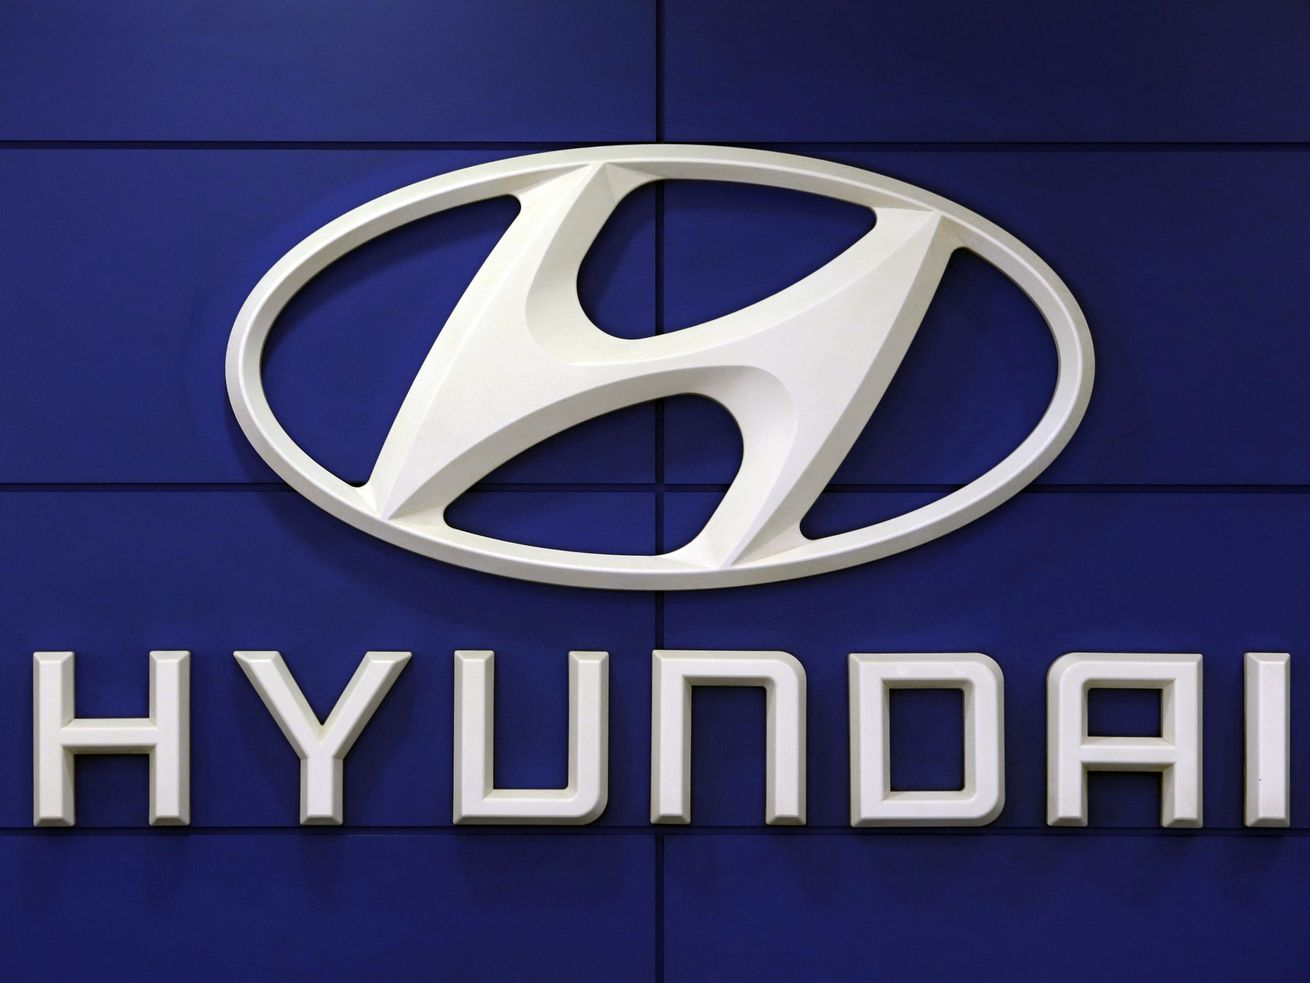 This July 26 2018 file photo shows the logo of Hyundai Motor Co. in Seoul, South Korea. Hyundai is recalling over 390,000 vehicles in the U.S. and Canada, Tuesday, May 4, 2021, for problems that can cause engine fires.